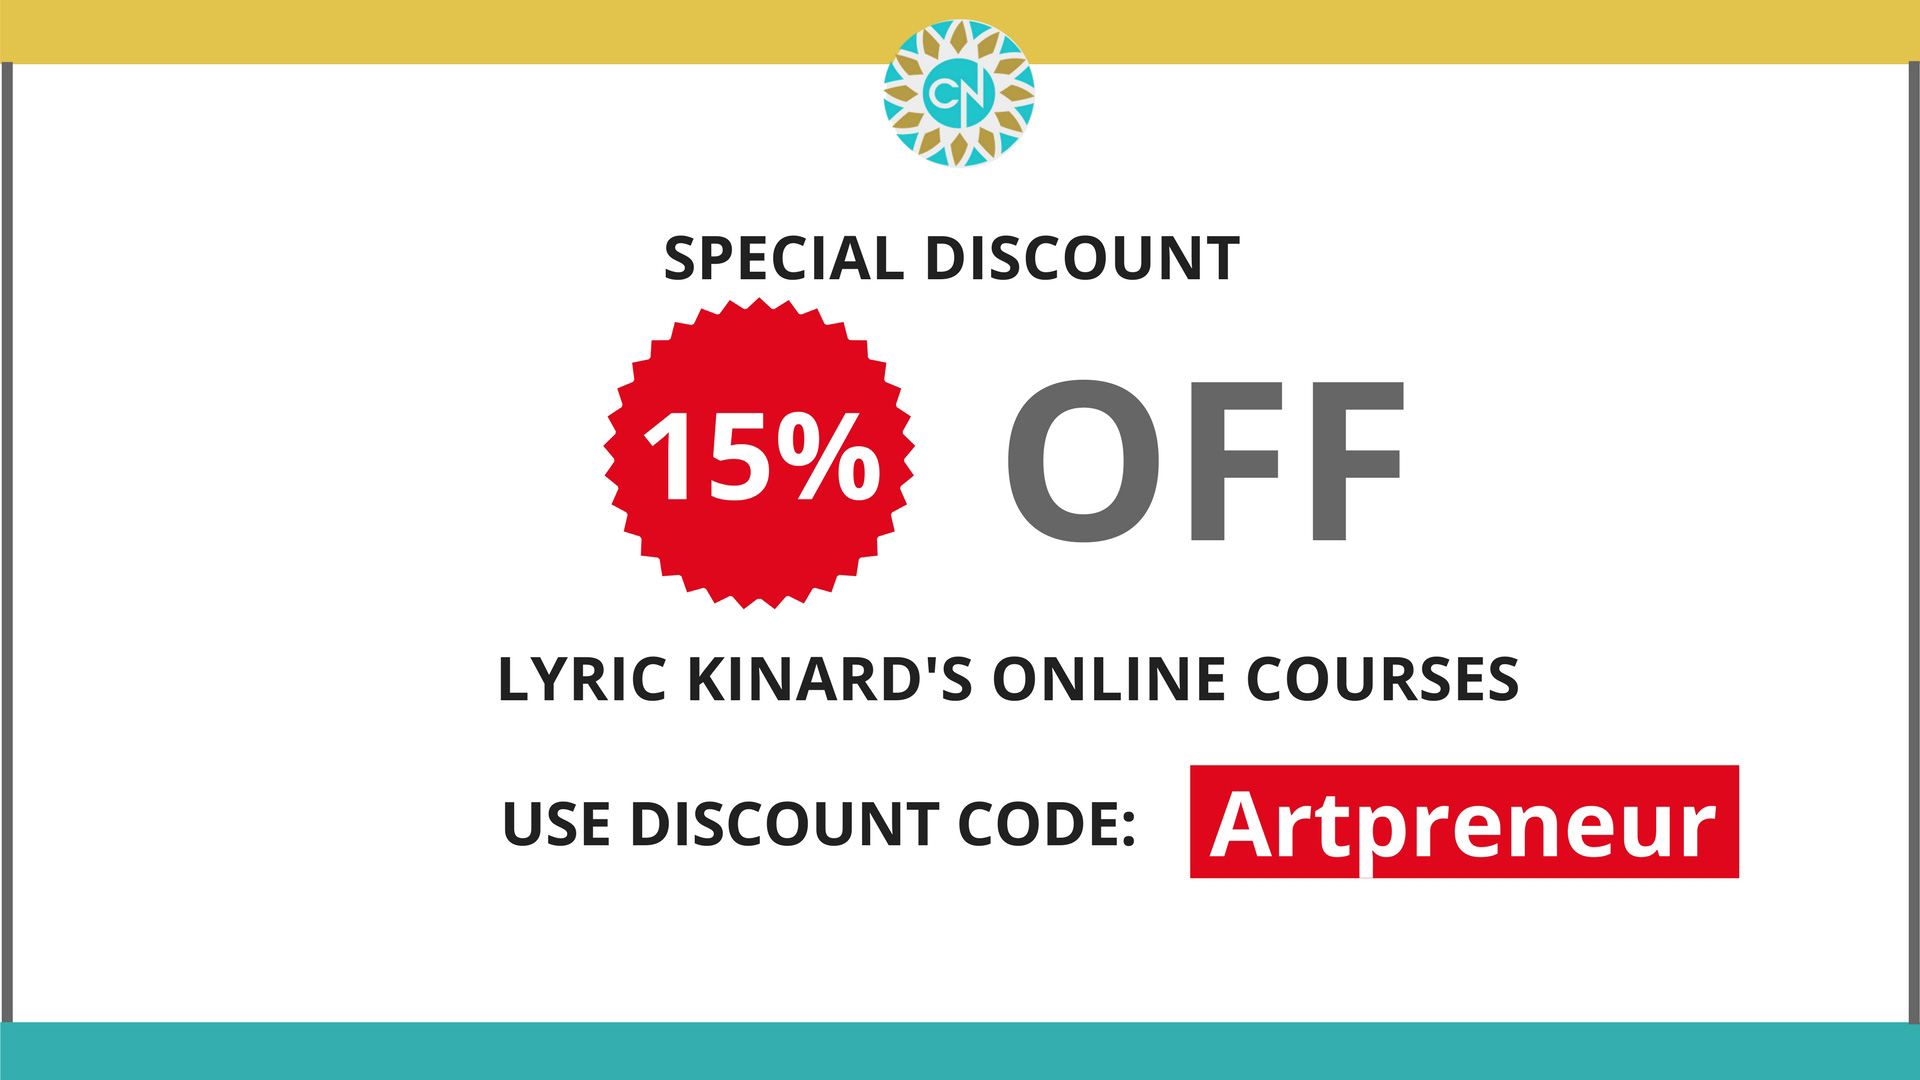 Lyric Kinard's Discount on her Online Courses